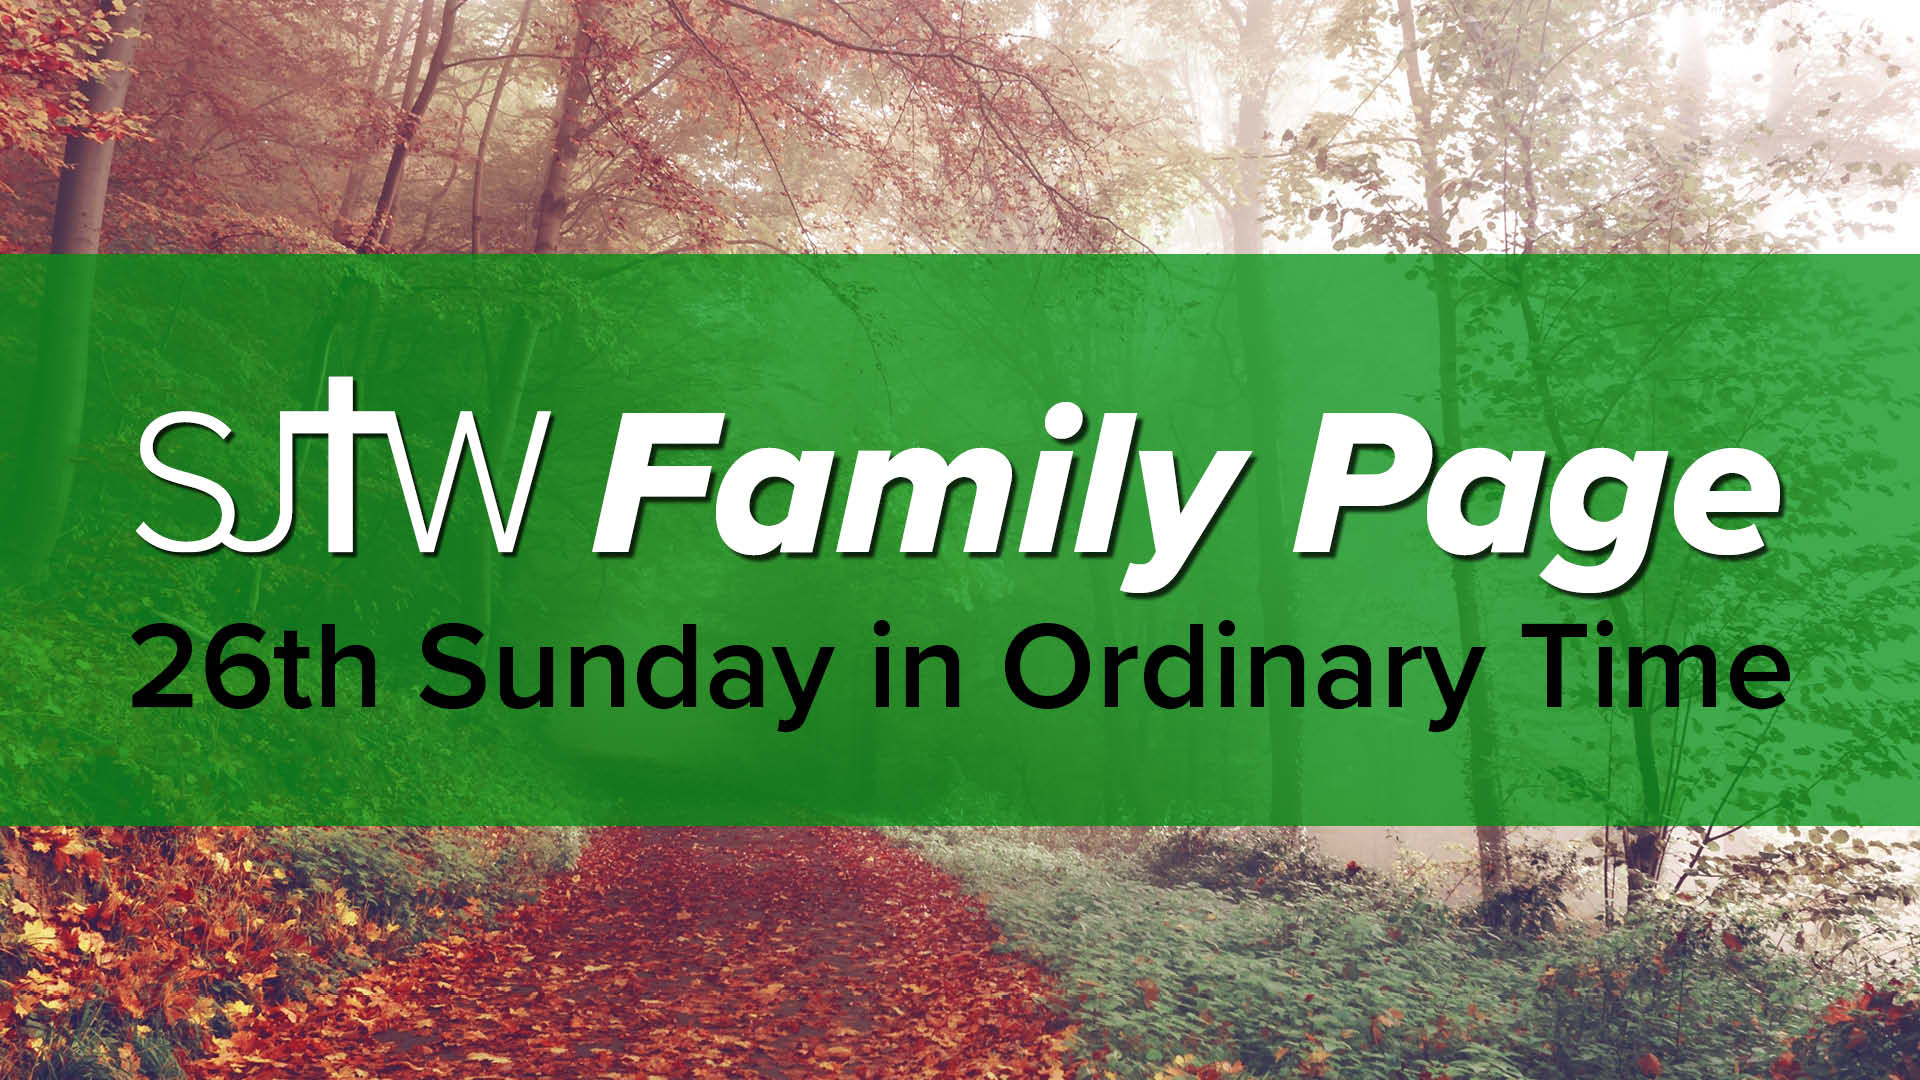 Family Page - 26th Sunday in Ordinary Time